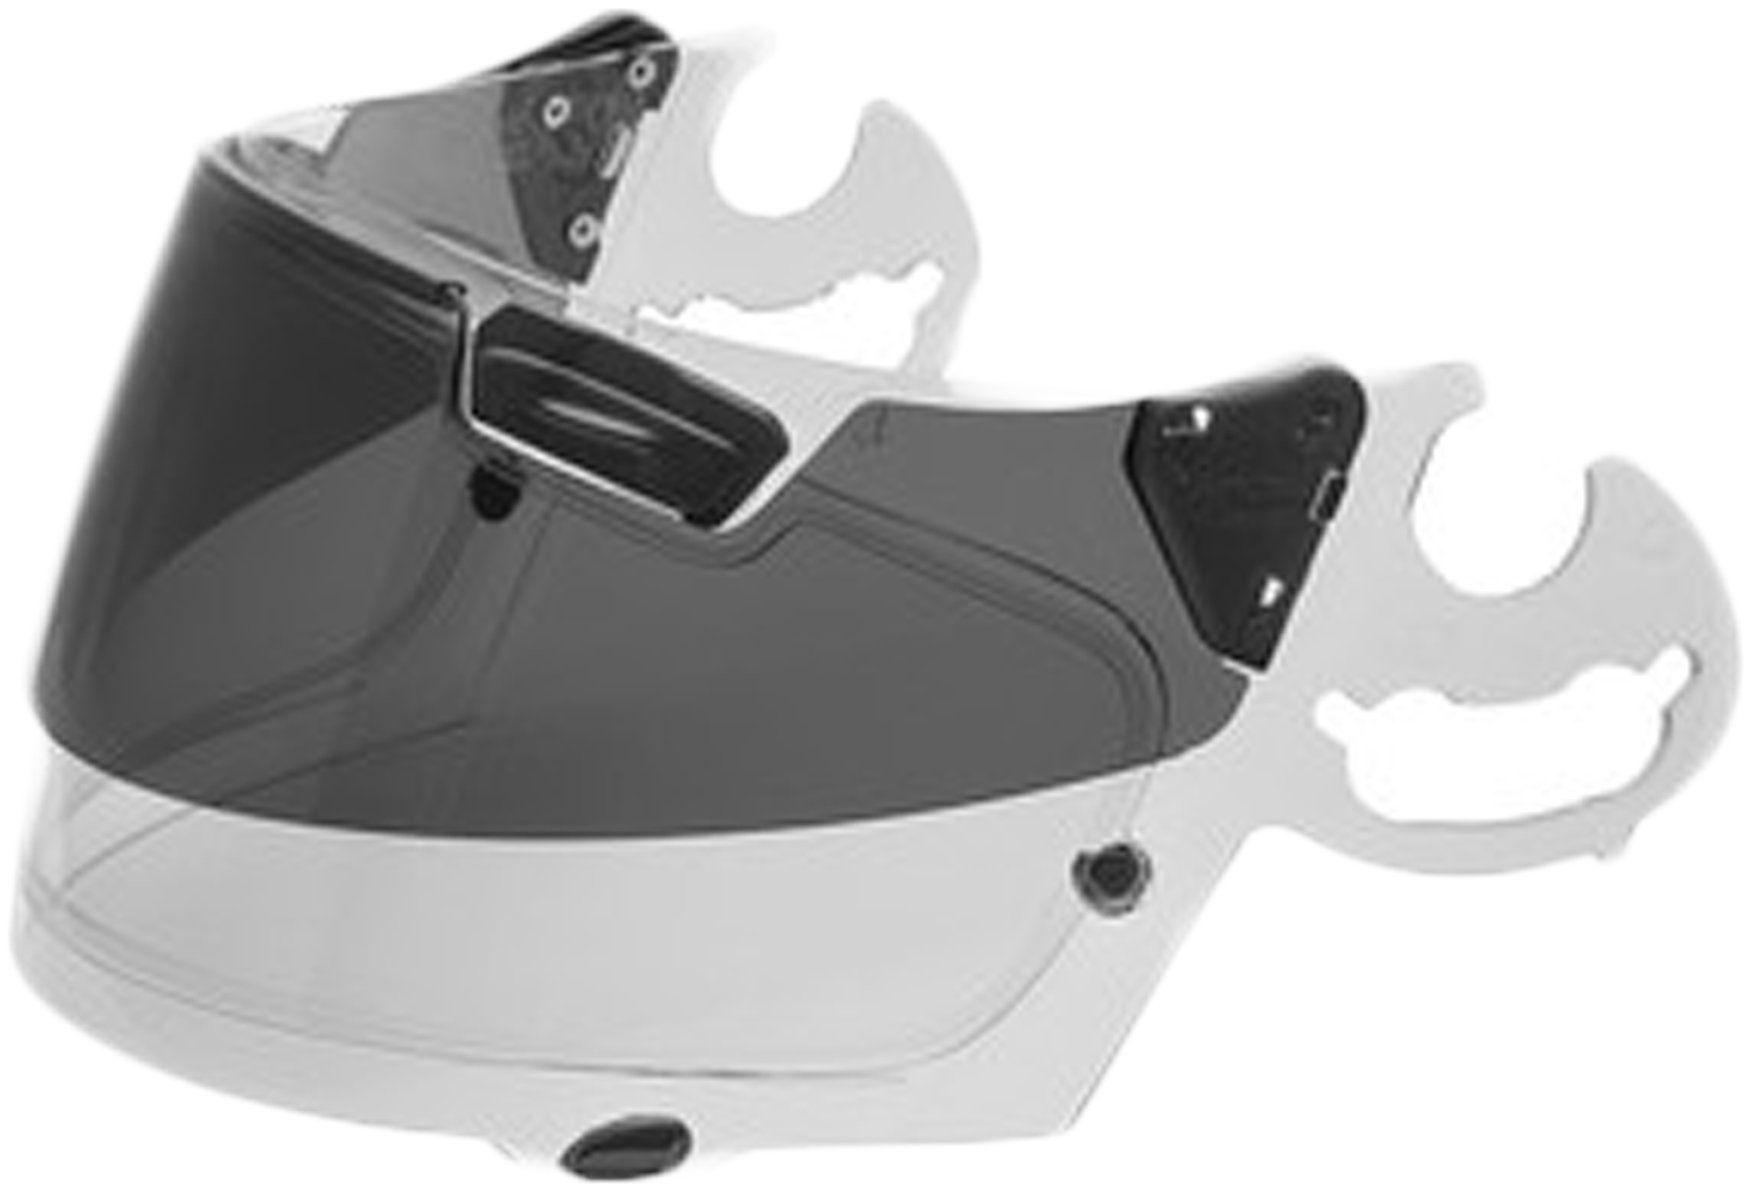 Arai SAI Pro Shade System Frame Only w/out Shield Men's Street Motorcycle Helmet Accessories - Black/White / One Size